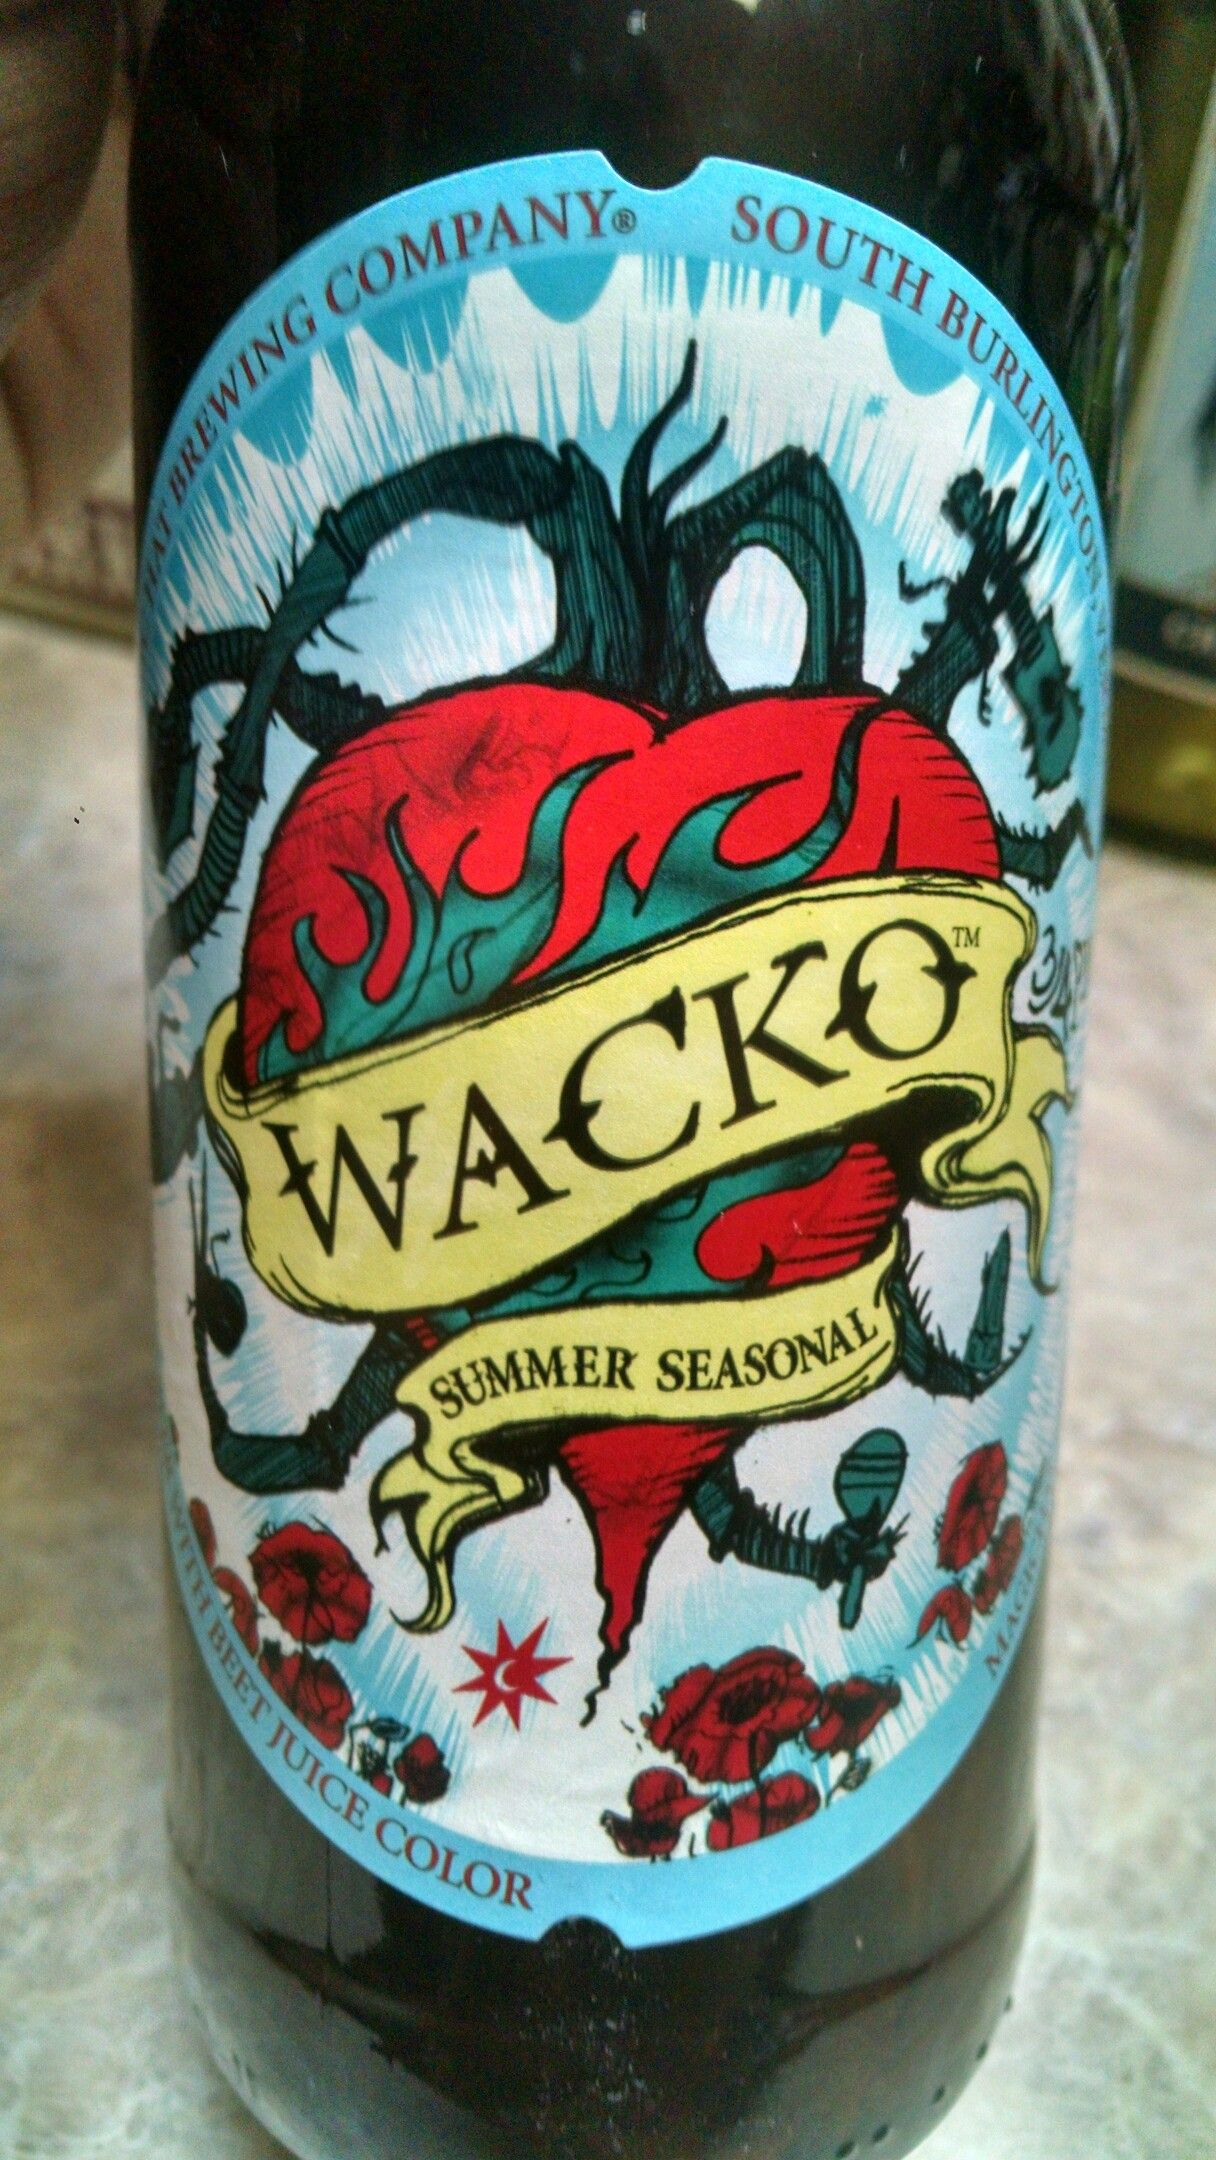 WACKO summer seasonal a beer with beet juice and color by magic hat ...